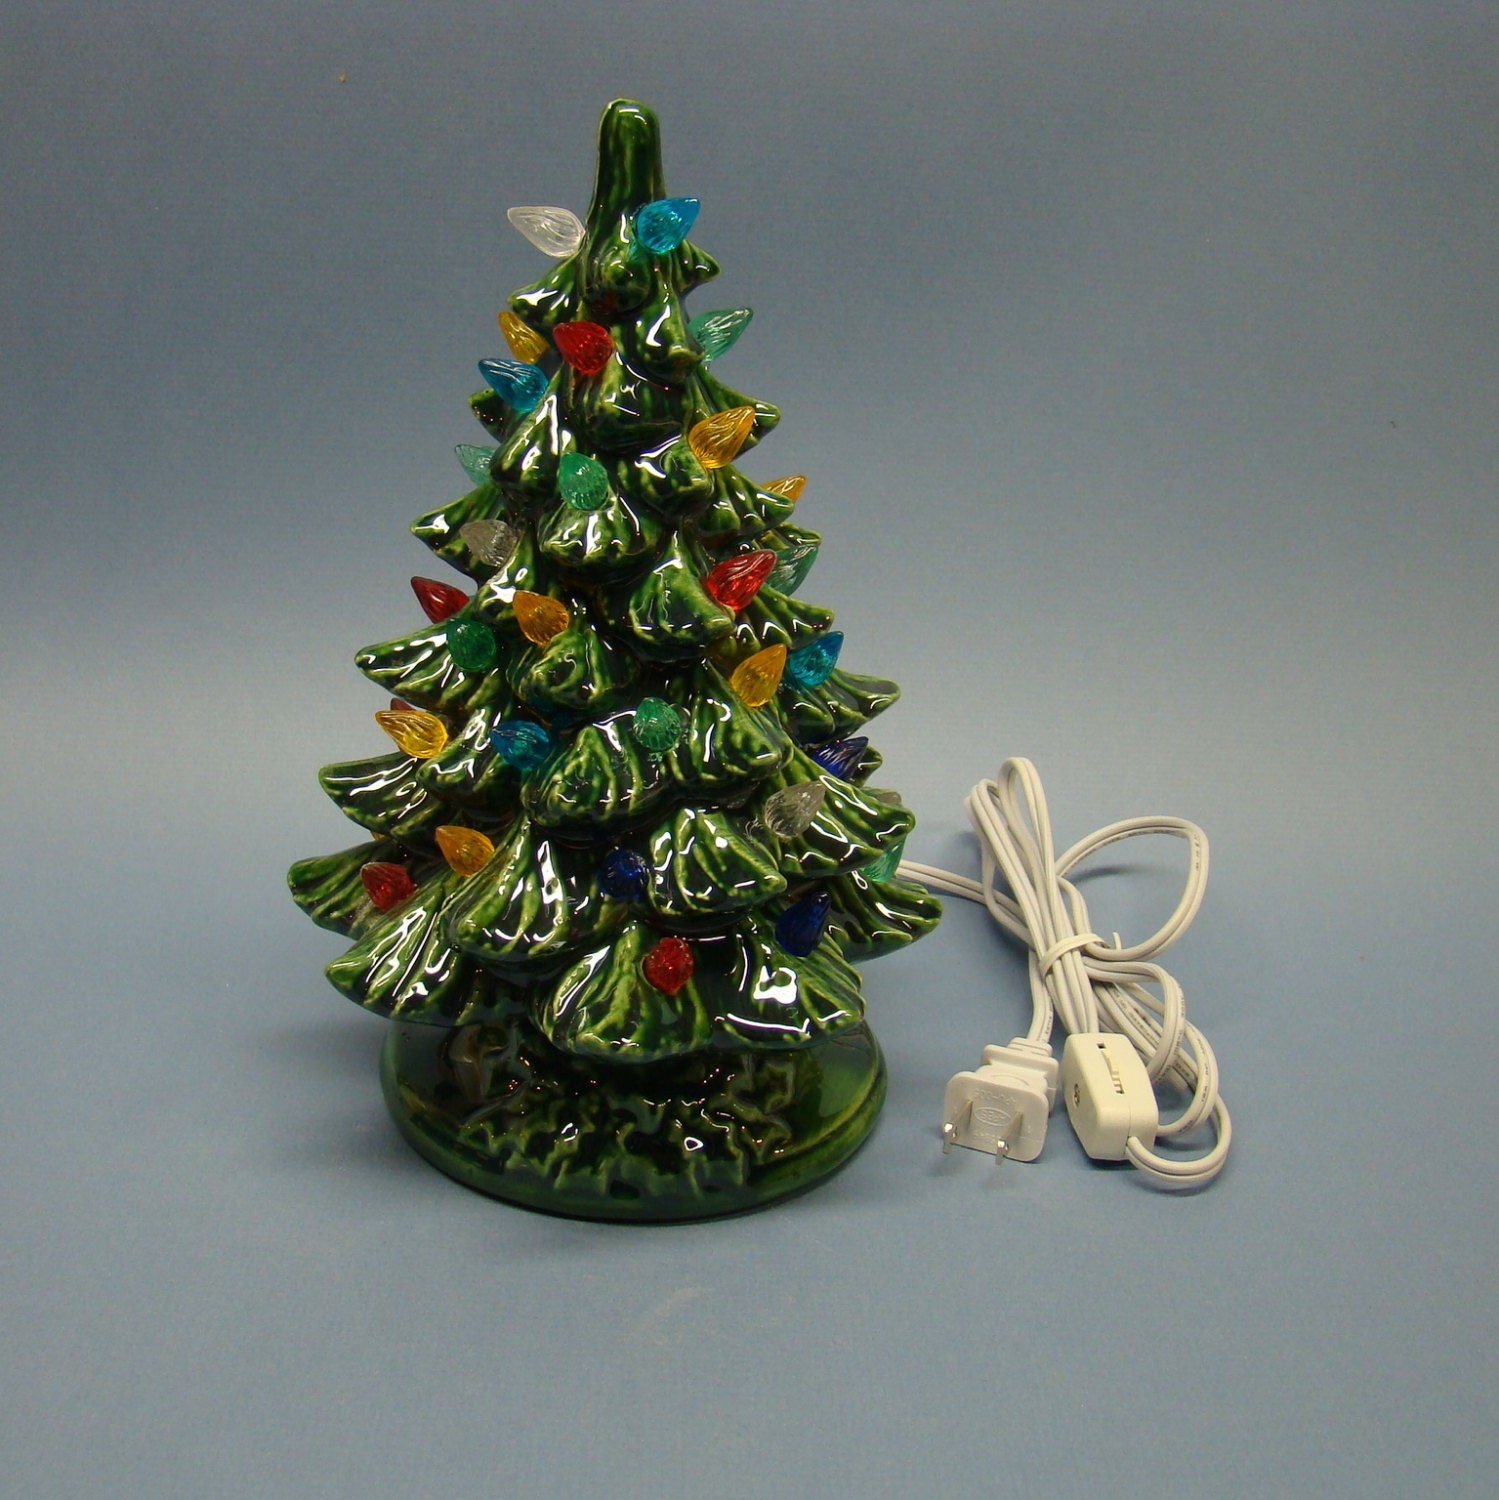 10 Christmas Tree With Electric Light Green Color Made